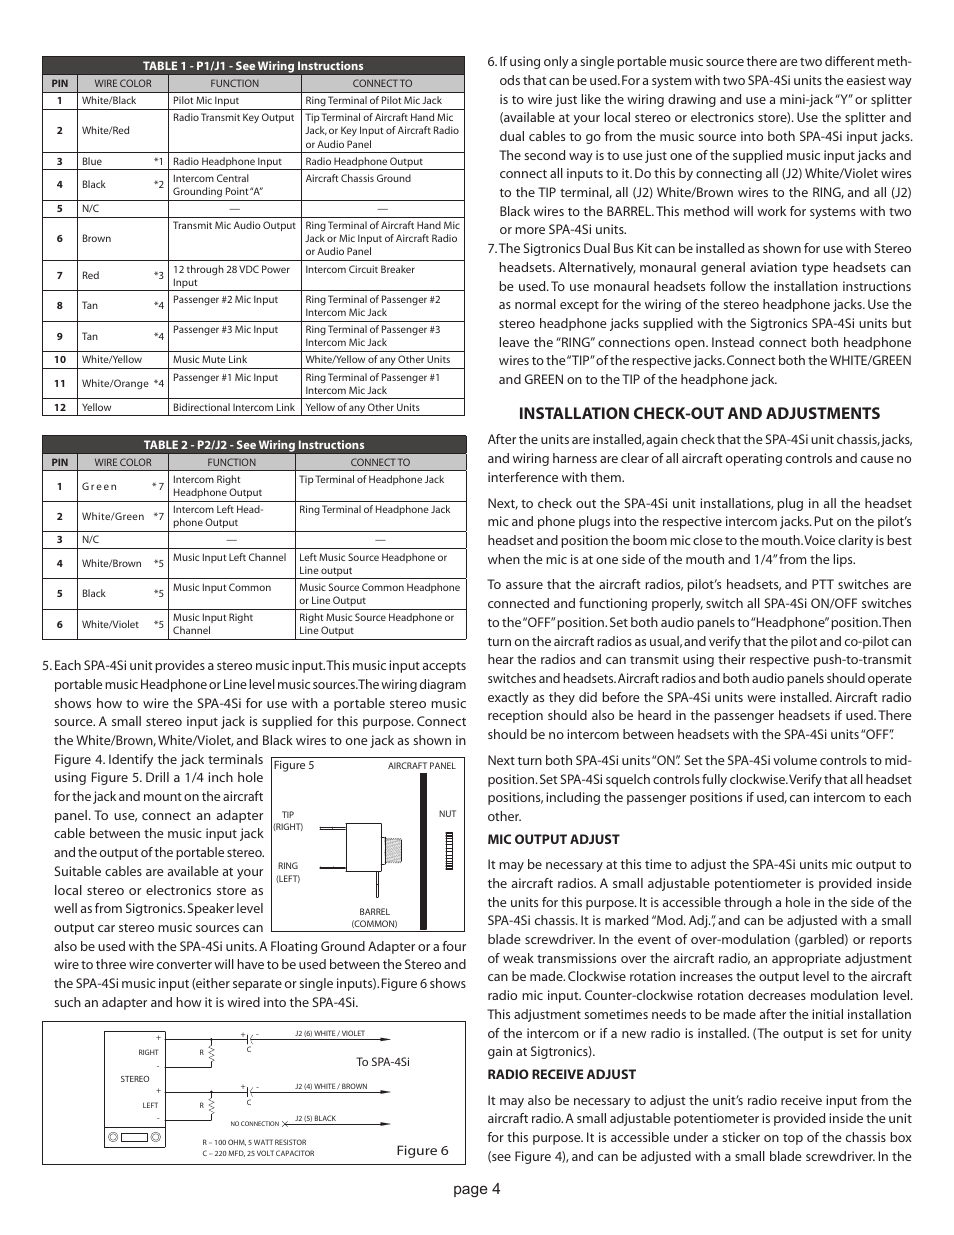 installation check-out and adjustments, page 4 | sigtronics spa-4si user  manual | page 4 / 6